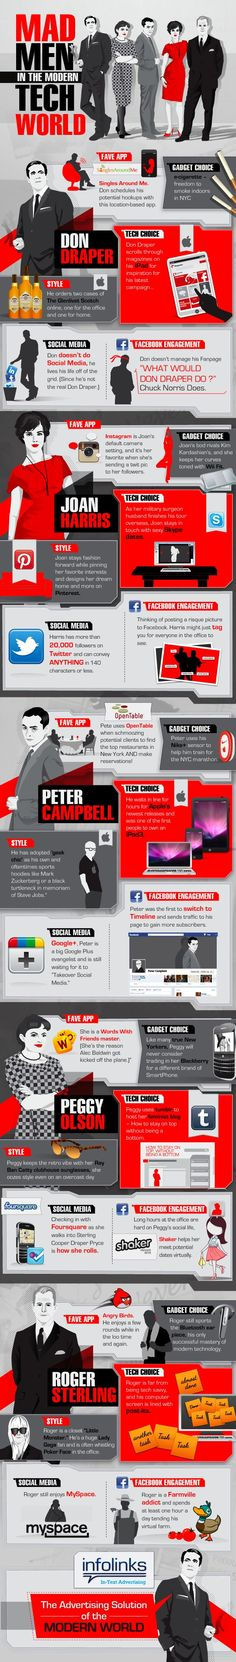 How Would The Mad Men Fair Out In The Modern Tech World? #infographic